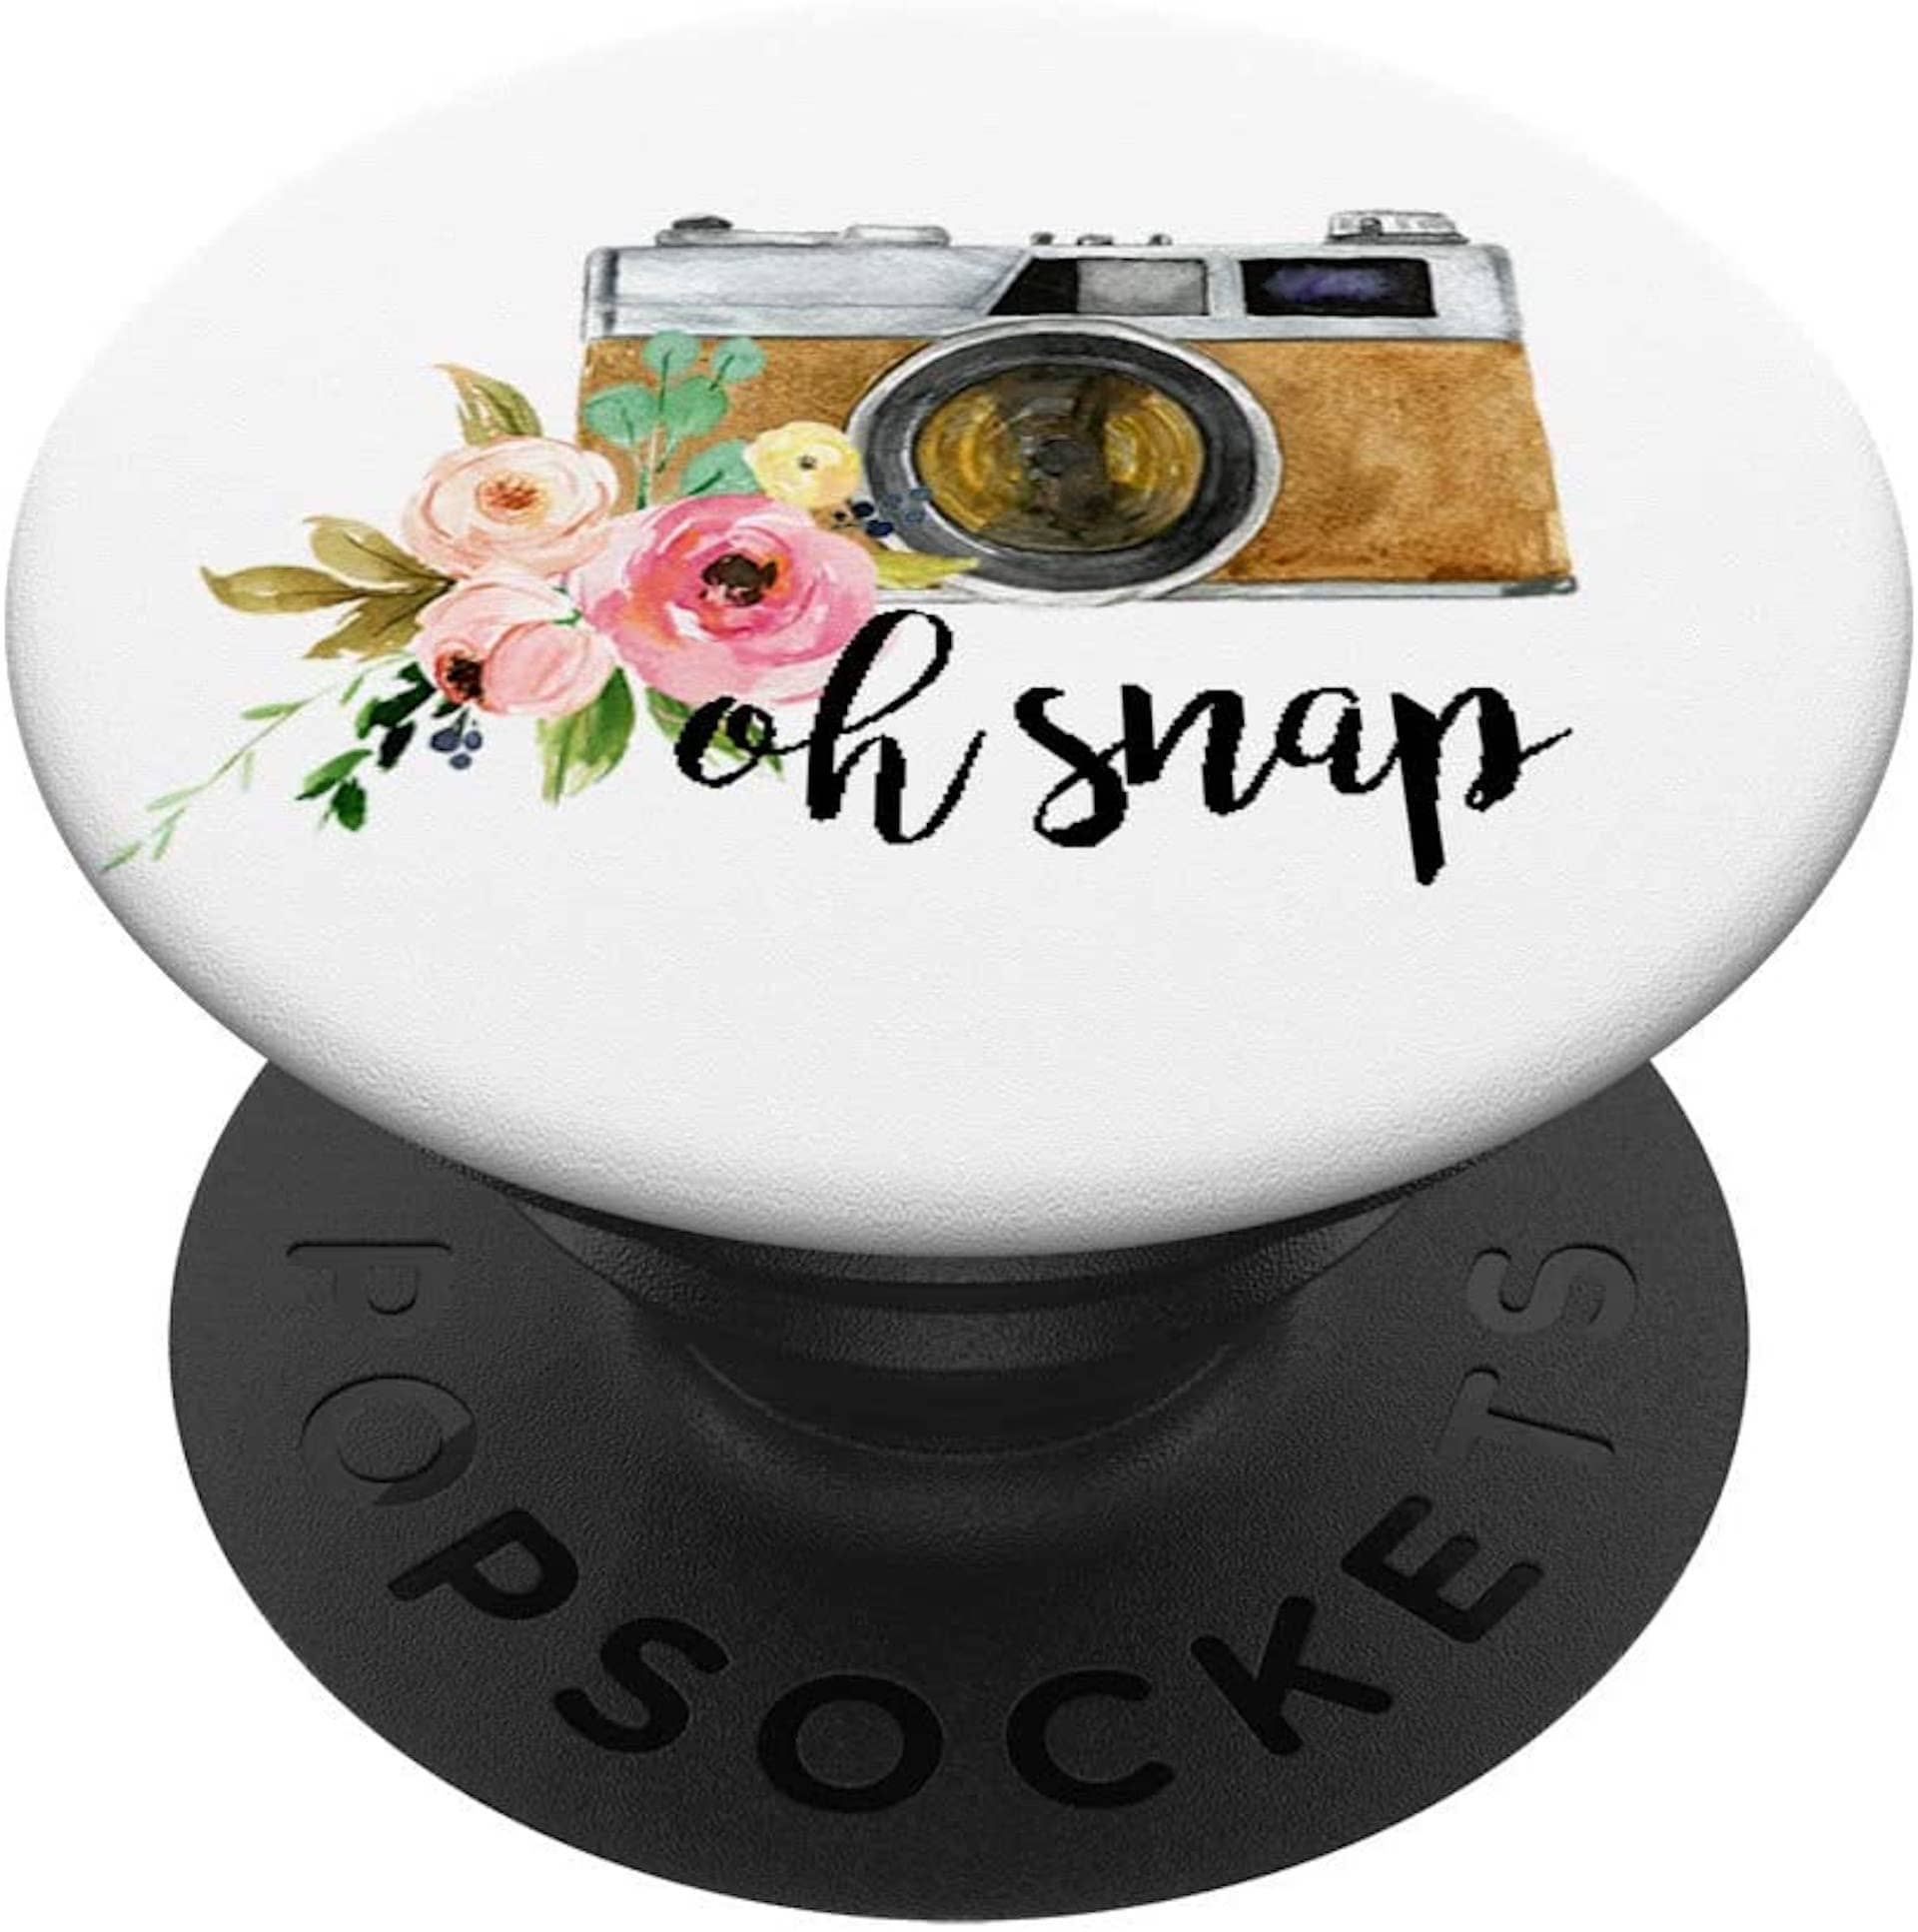 Best Photo Gifts for Photographers - Ideas Photographer Lovers - Popsocket Pin